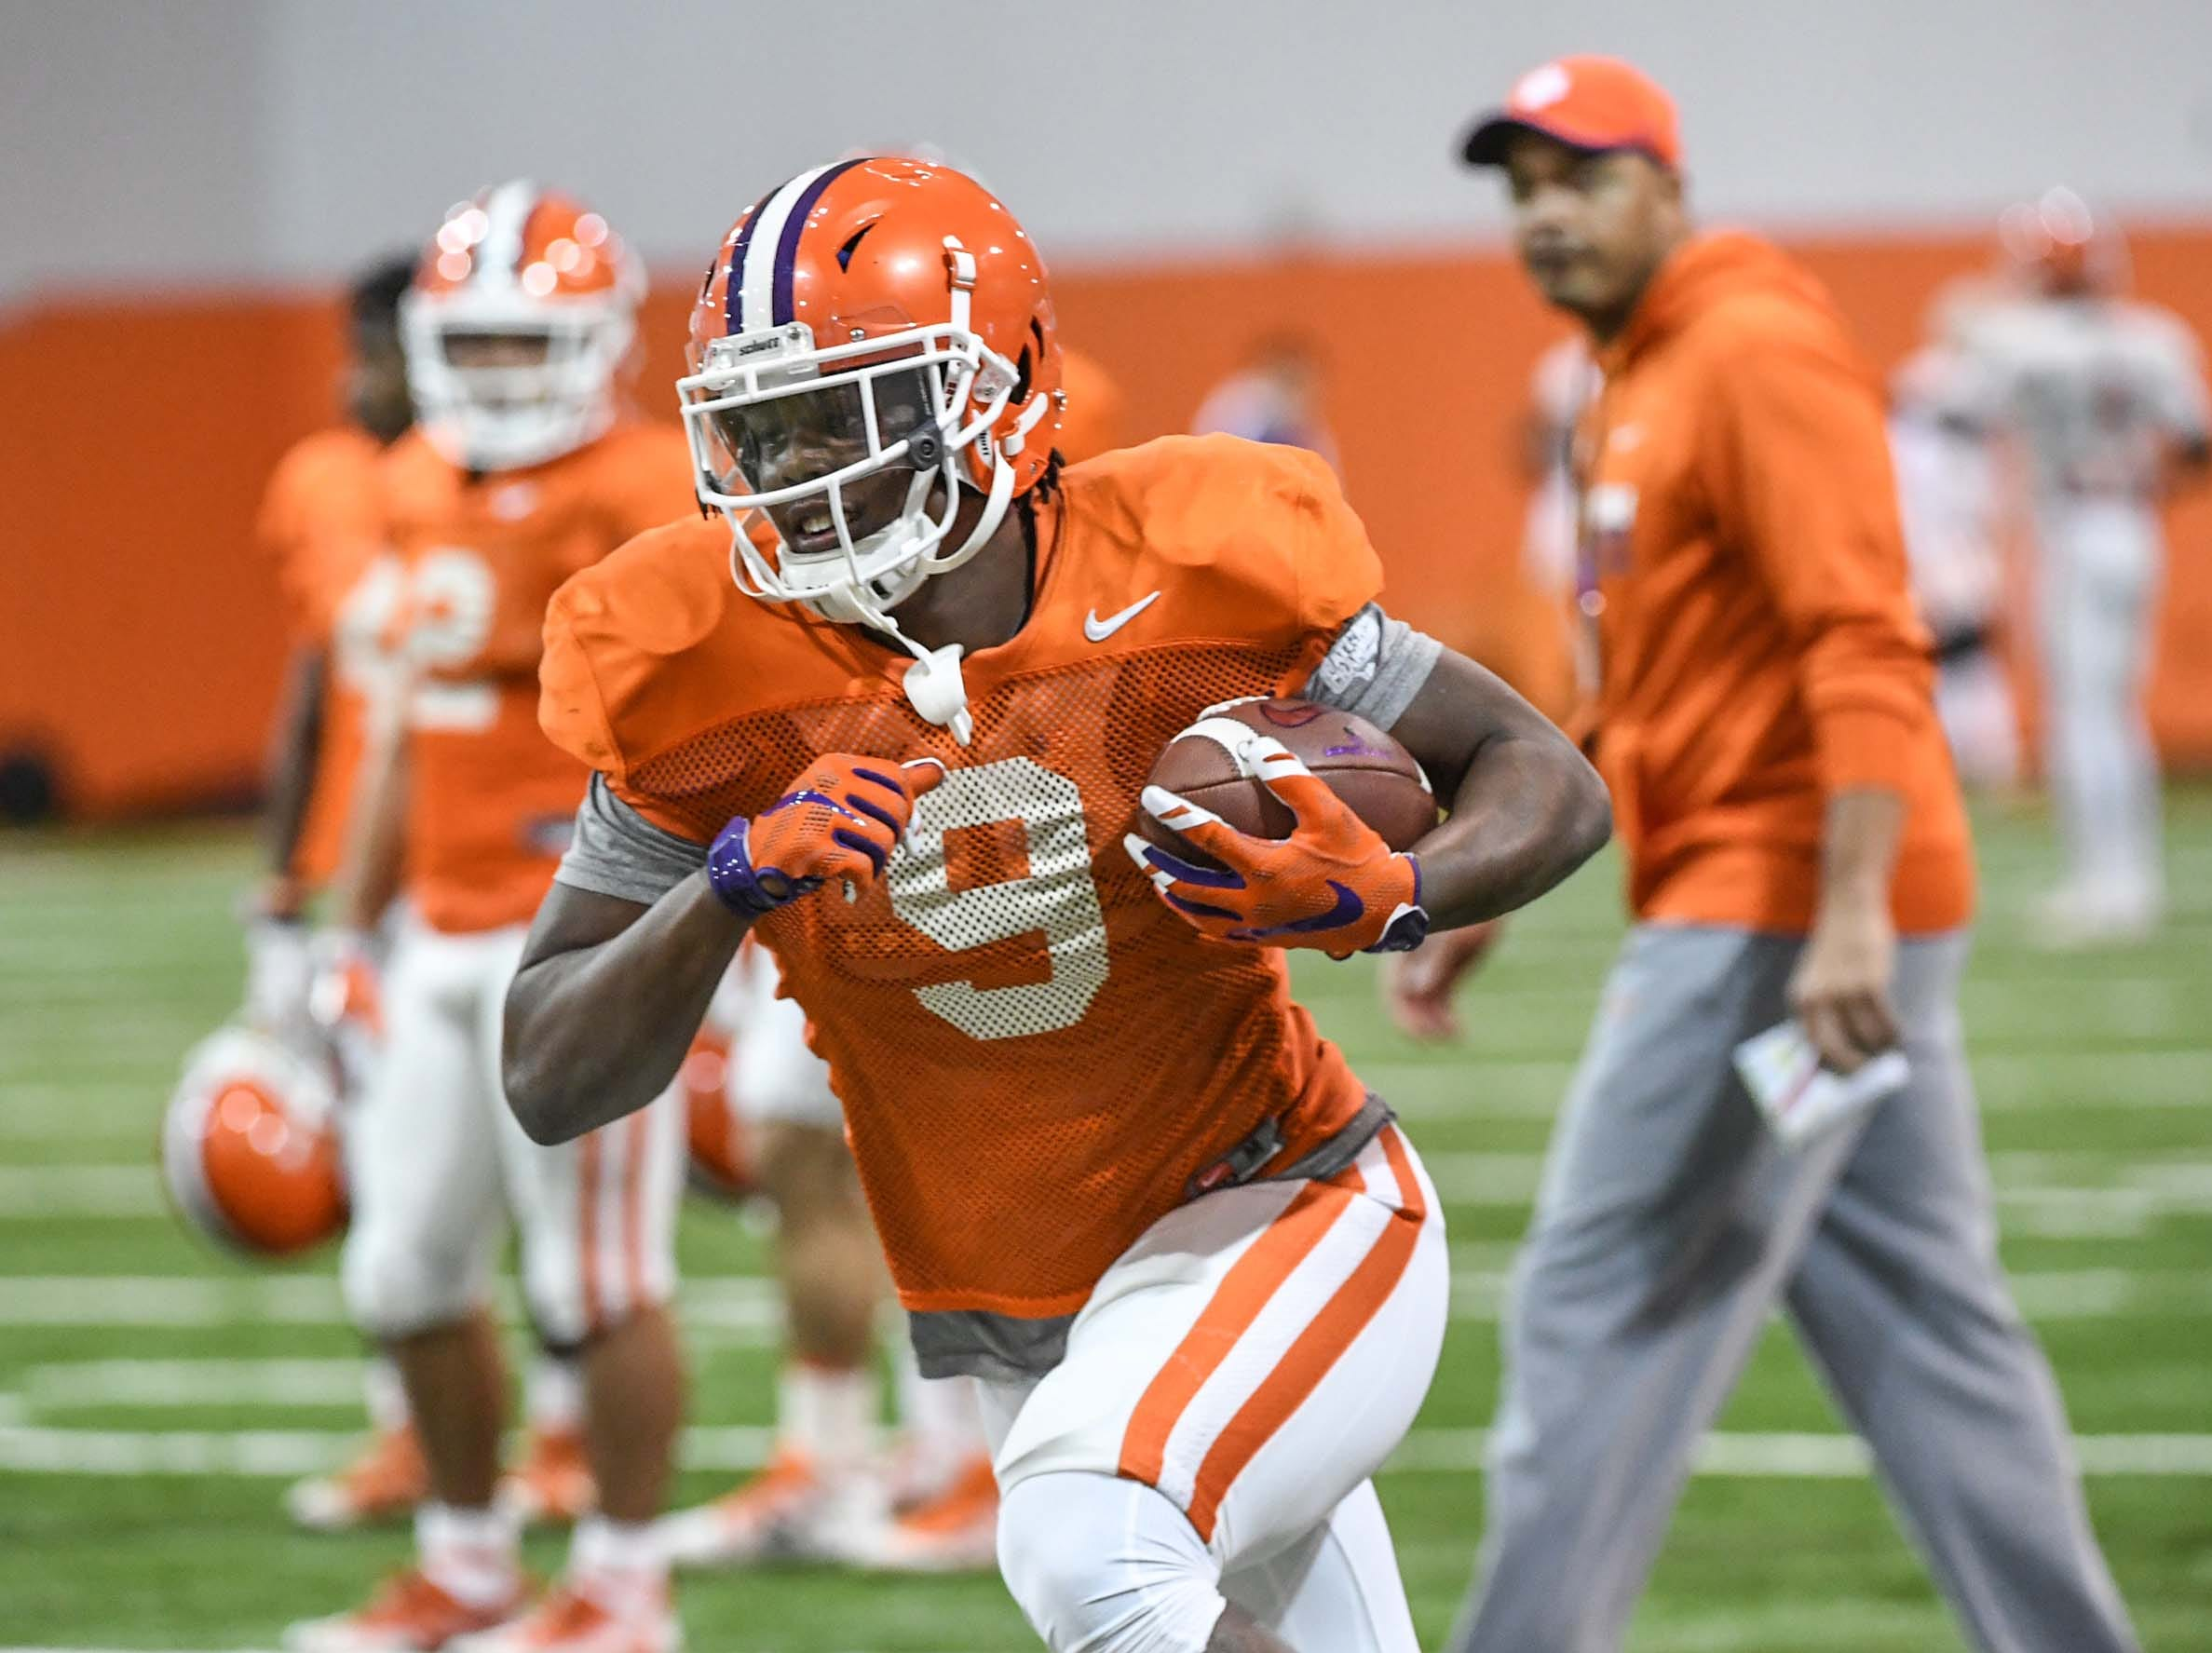 Clemson running back Travis Etienne (9) runs after a catch during practice for the Cotton Bowl at the Poe Indoor Facility in Clemson Friday, December 14, 2018.